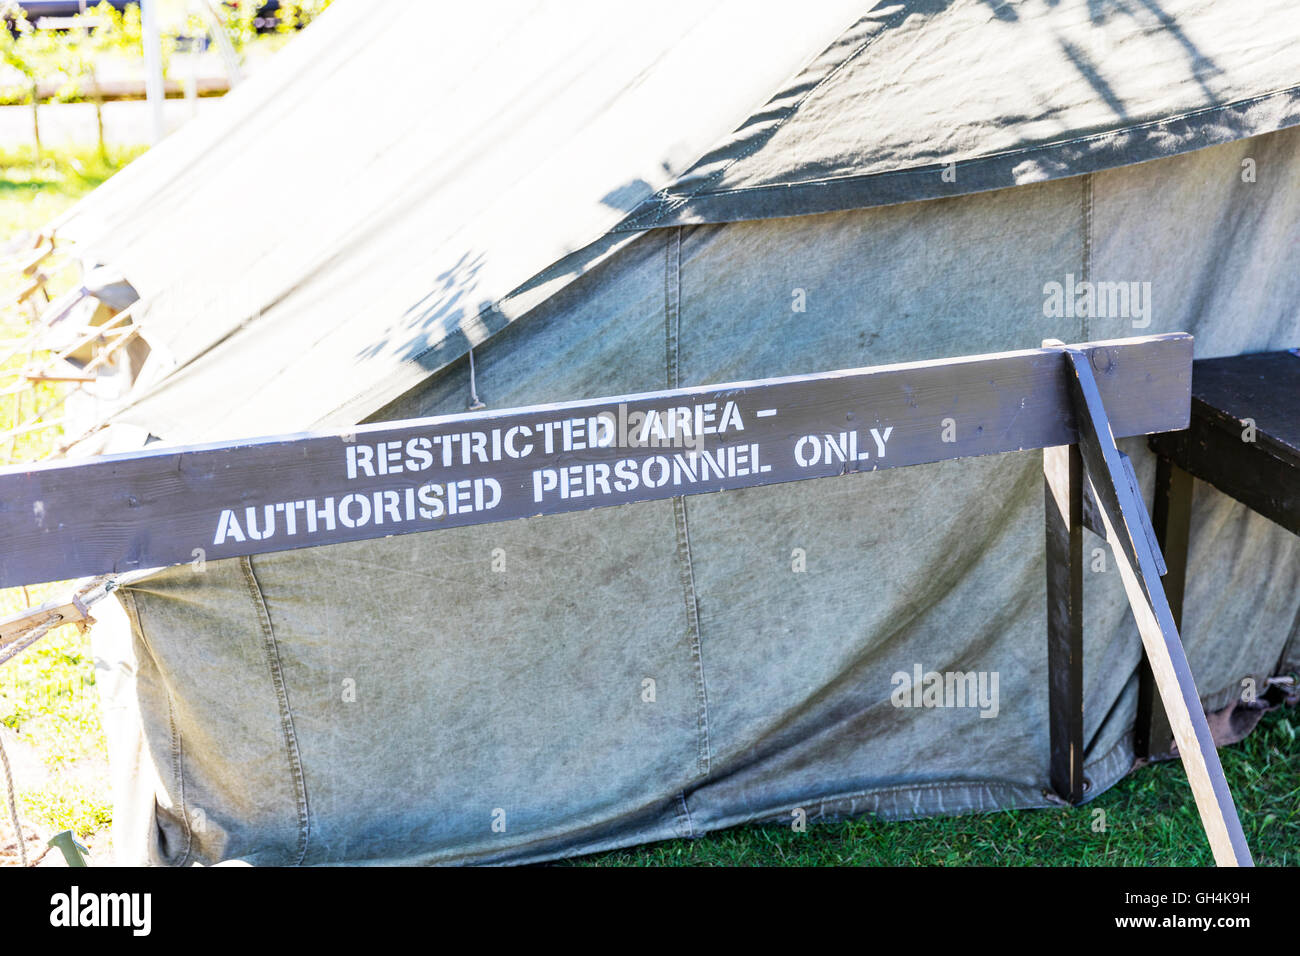 Army restricted area sign authorised personnel only signs warning UK England GB - Stock Image